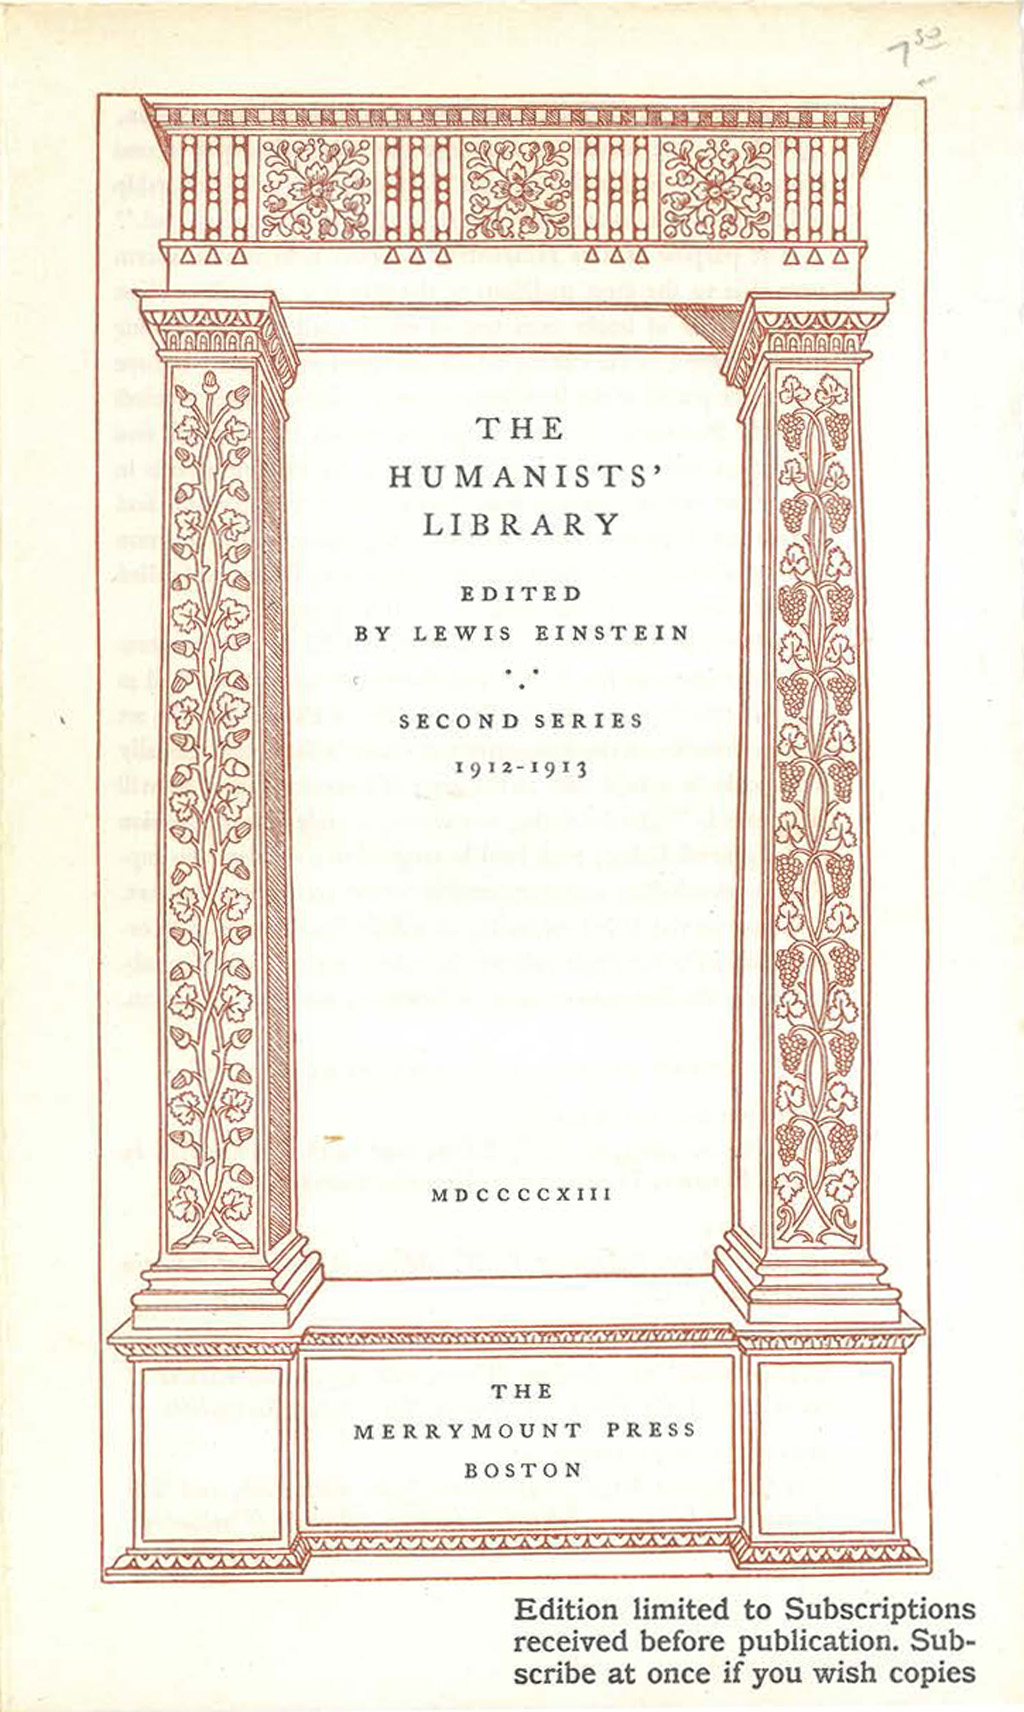 Front of circular for The Humanists' Library, second series (1913).  Printed by The Merrymount Press. Image courtesy of Barry Snider.